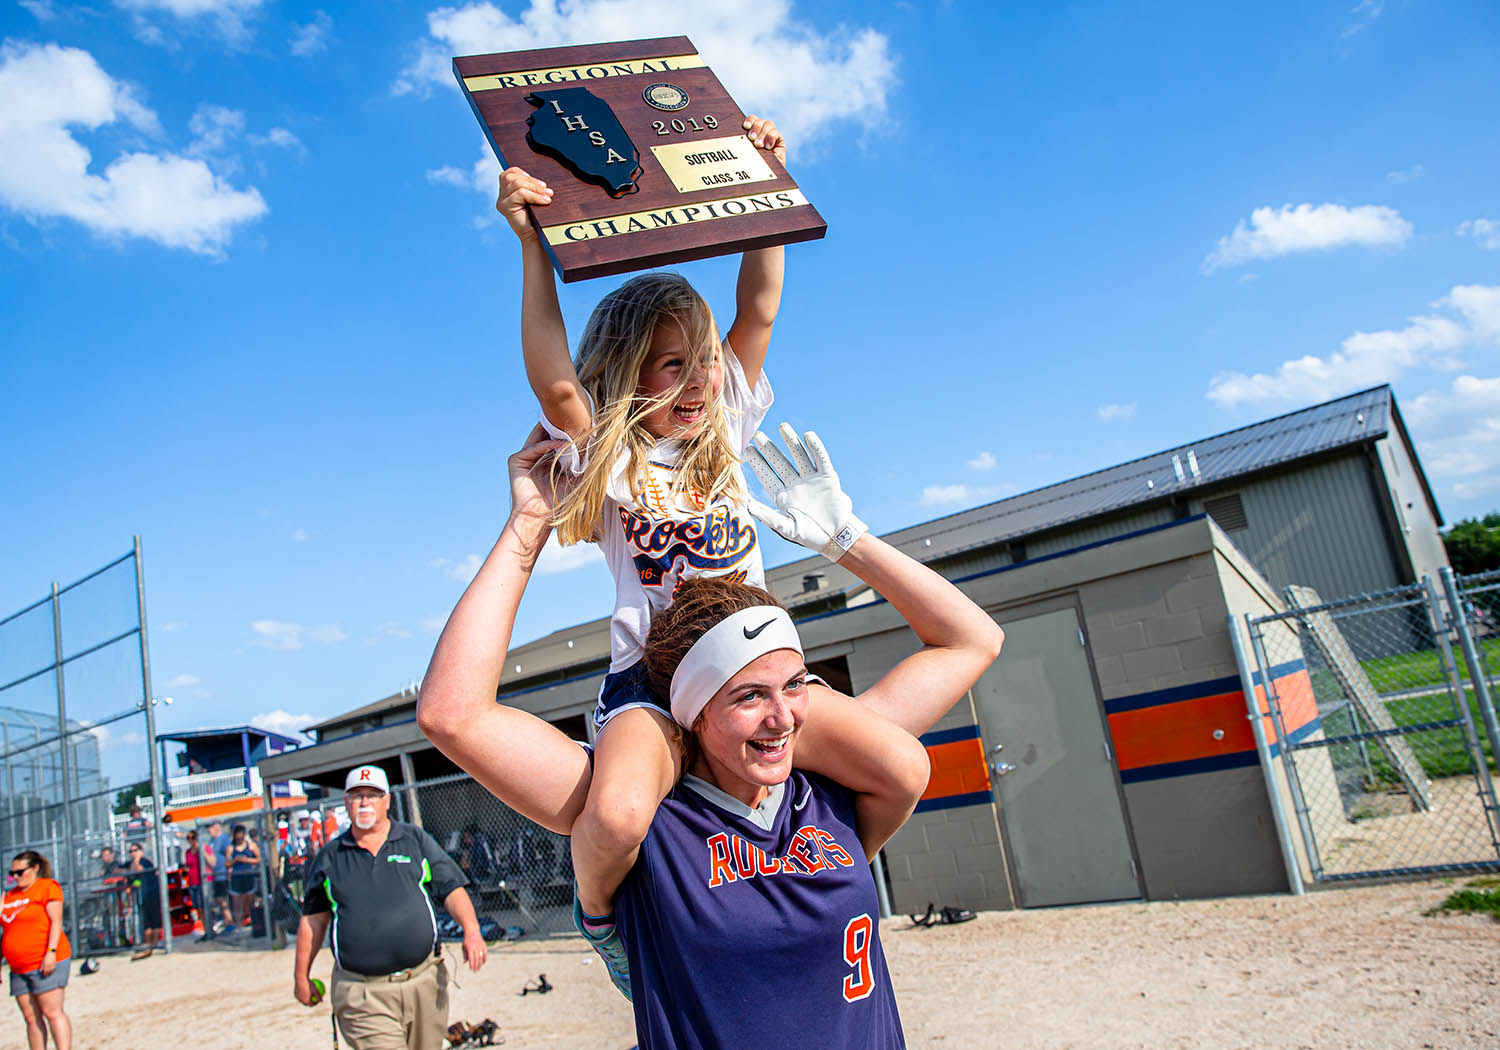 Blakely Howard, 5, celebrates with the championship plaque from the shoulders of Rochester's Reagan Miles (9) after the Rockets defeated Clinton 4-0 in the Class 3A Rochester Regional championship game at Rochester High School, Friday, May 24, 2019, in Rochester, Ill. [Justin L. Fowler/The State Journal-Register]